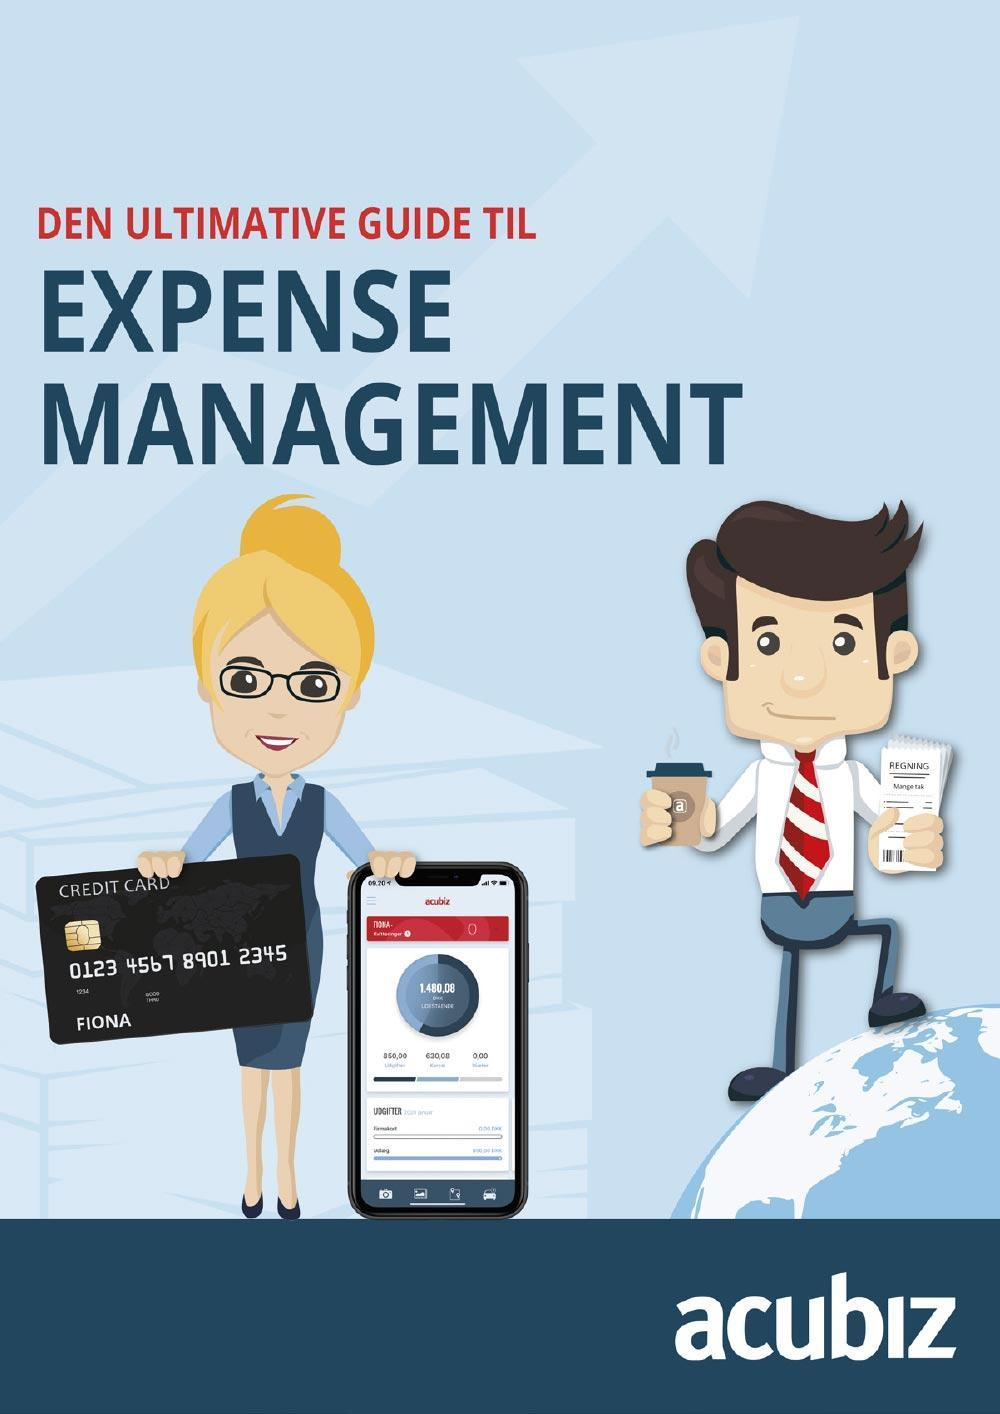 The ultimative guide to: Expense Management